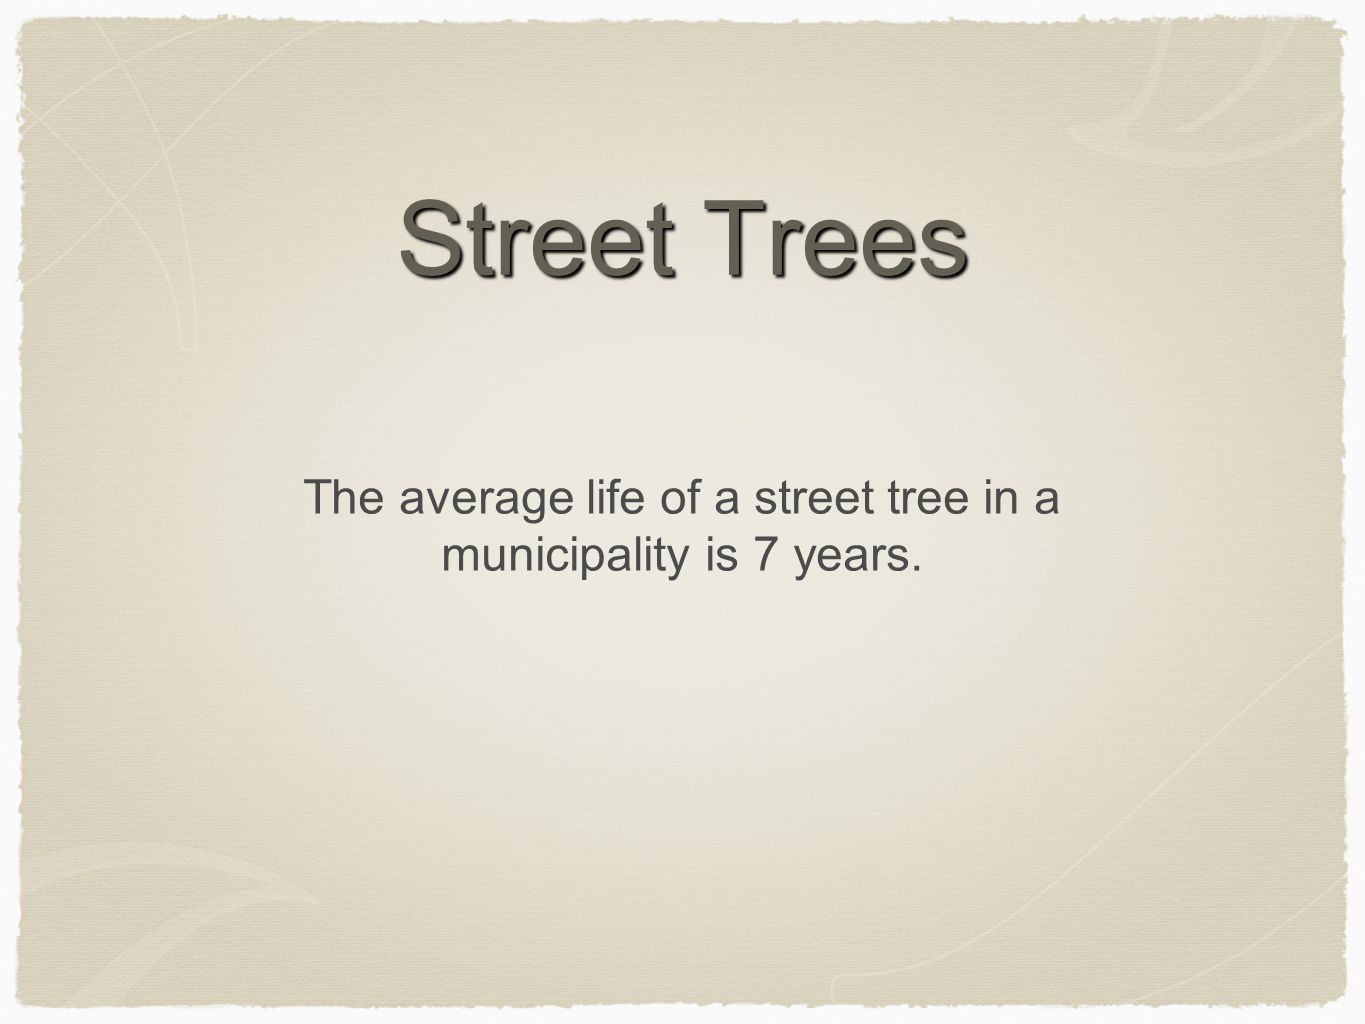 Street Trees The average life of a street tree in a municipality is 7 years.